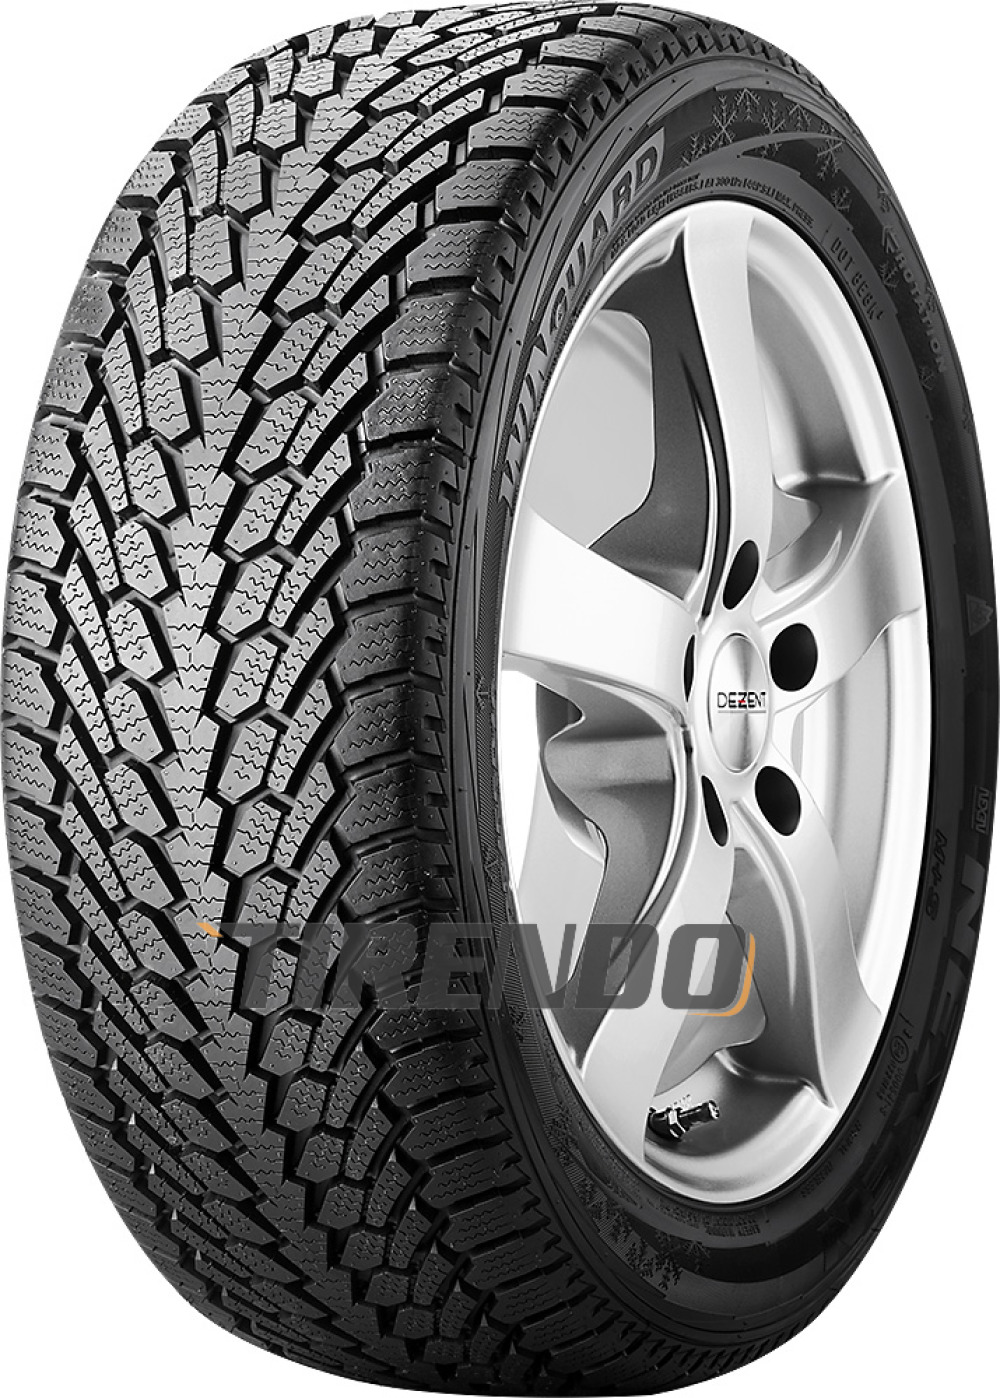 Nexen Winguard ( 235/50 R18 101V XL , RPB, SUV )